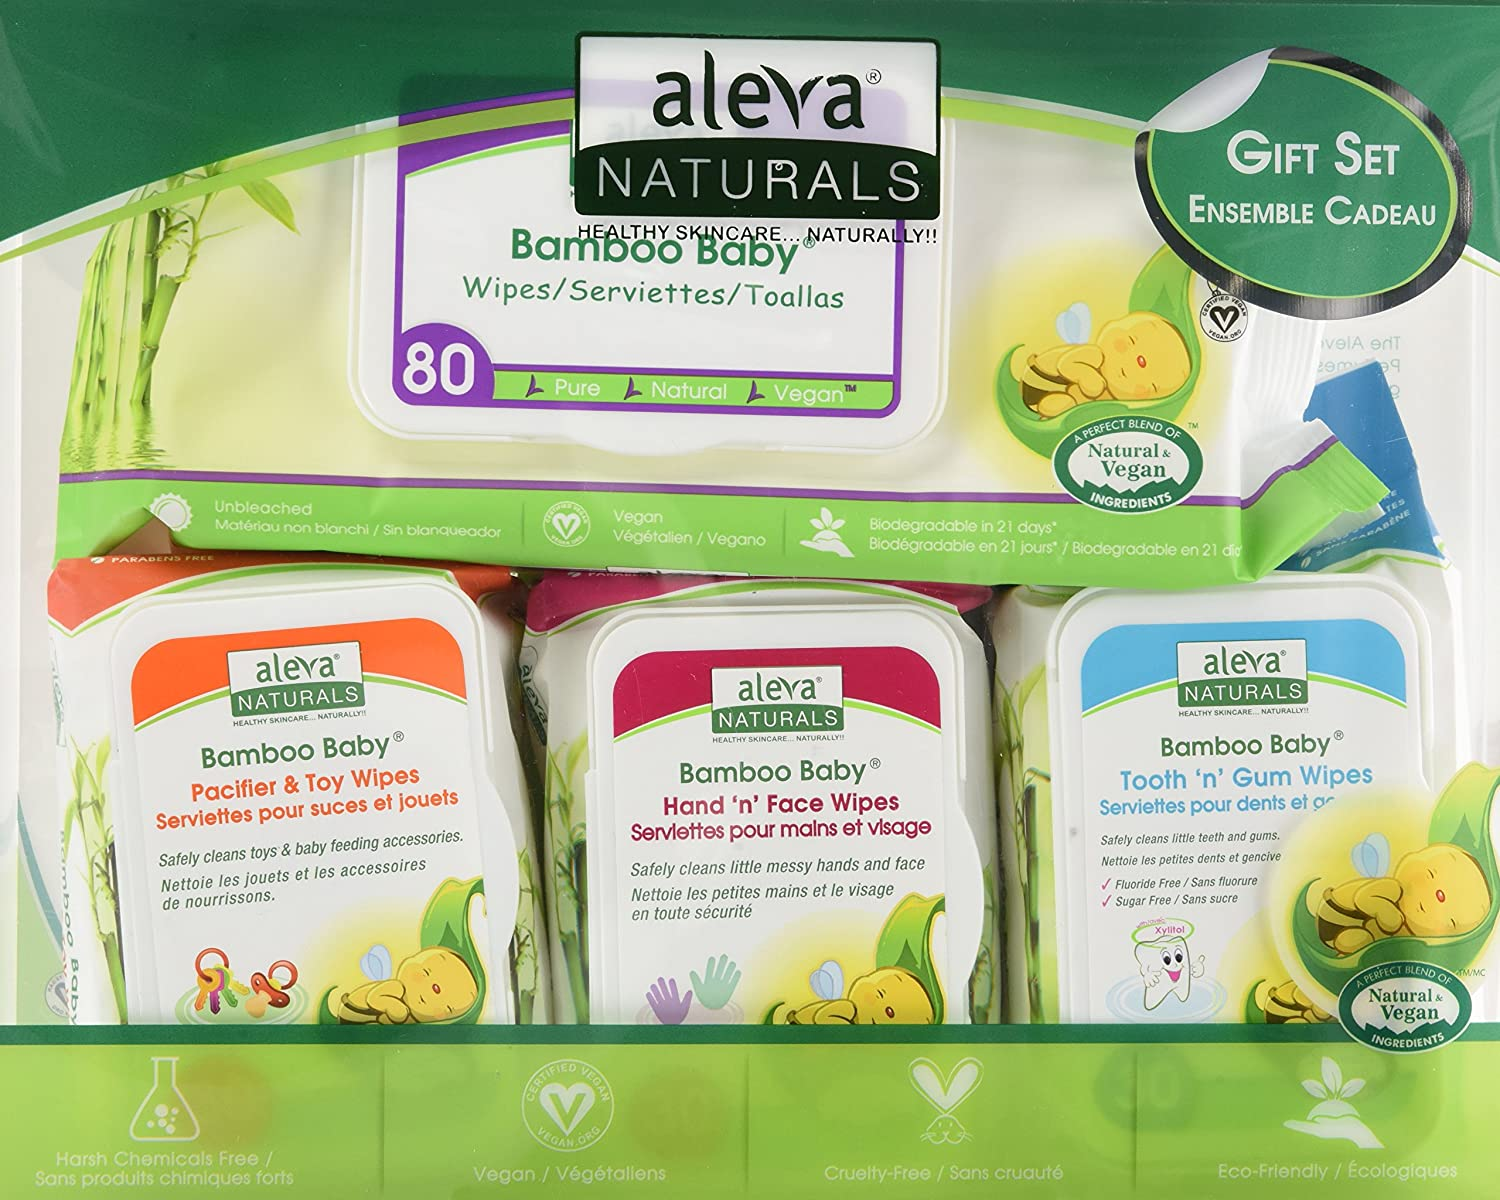 Aleva Naturals Bamboo Baby Gift Set wipes gift set